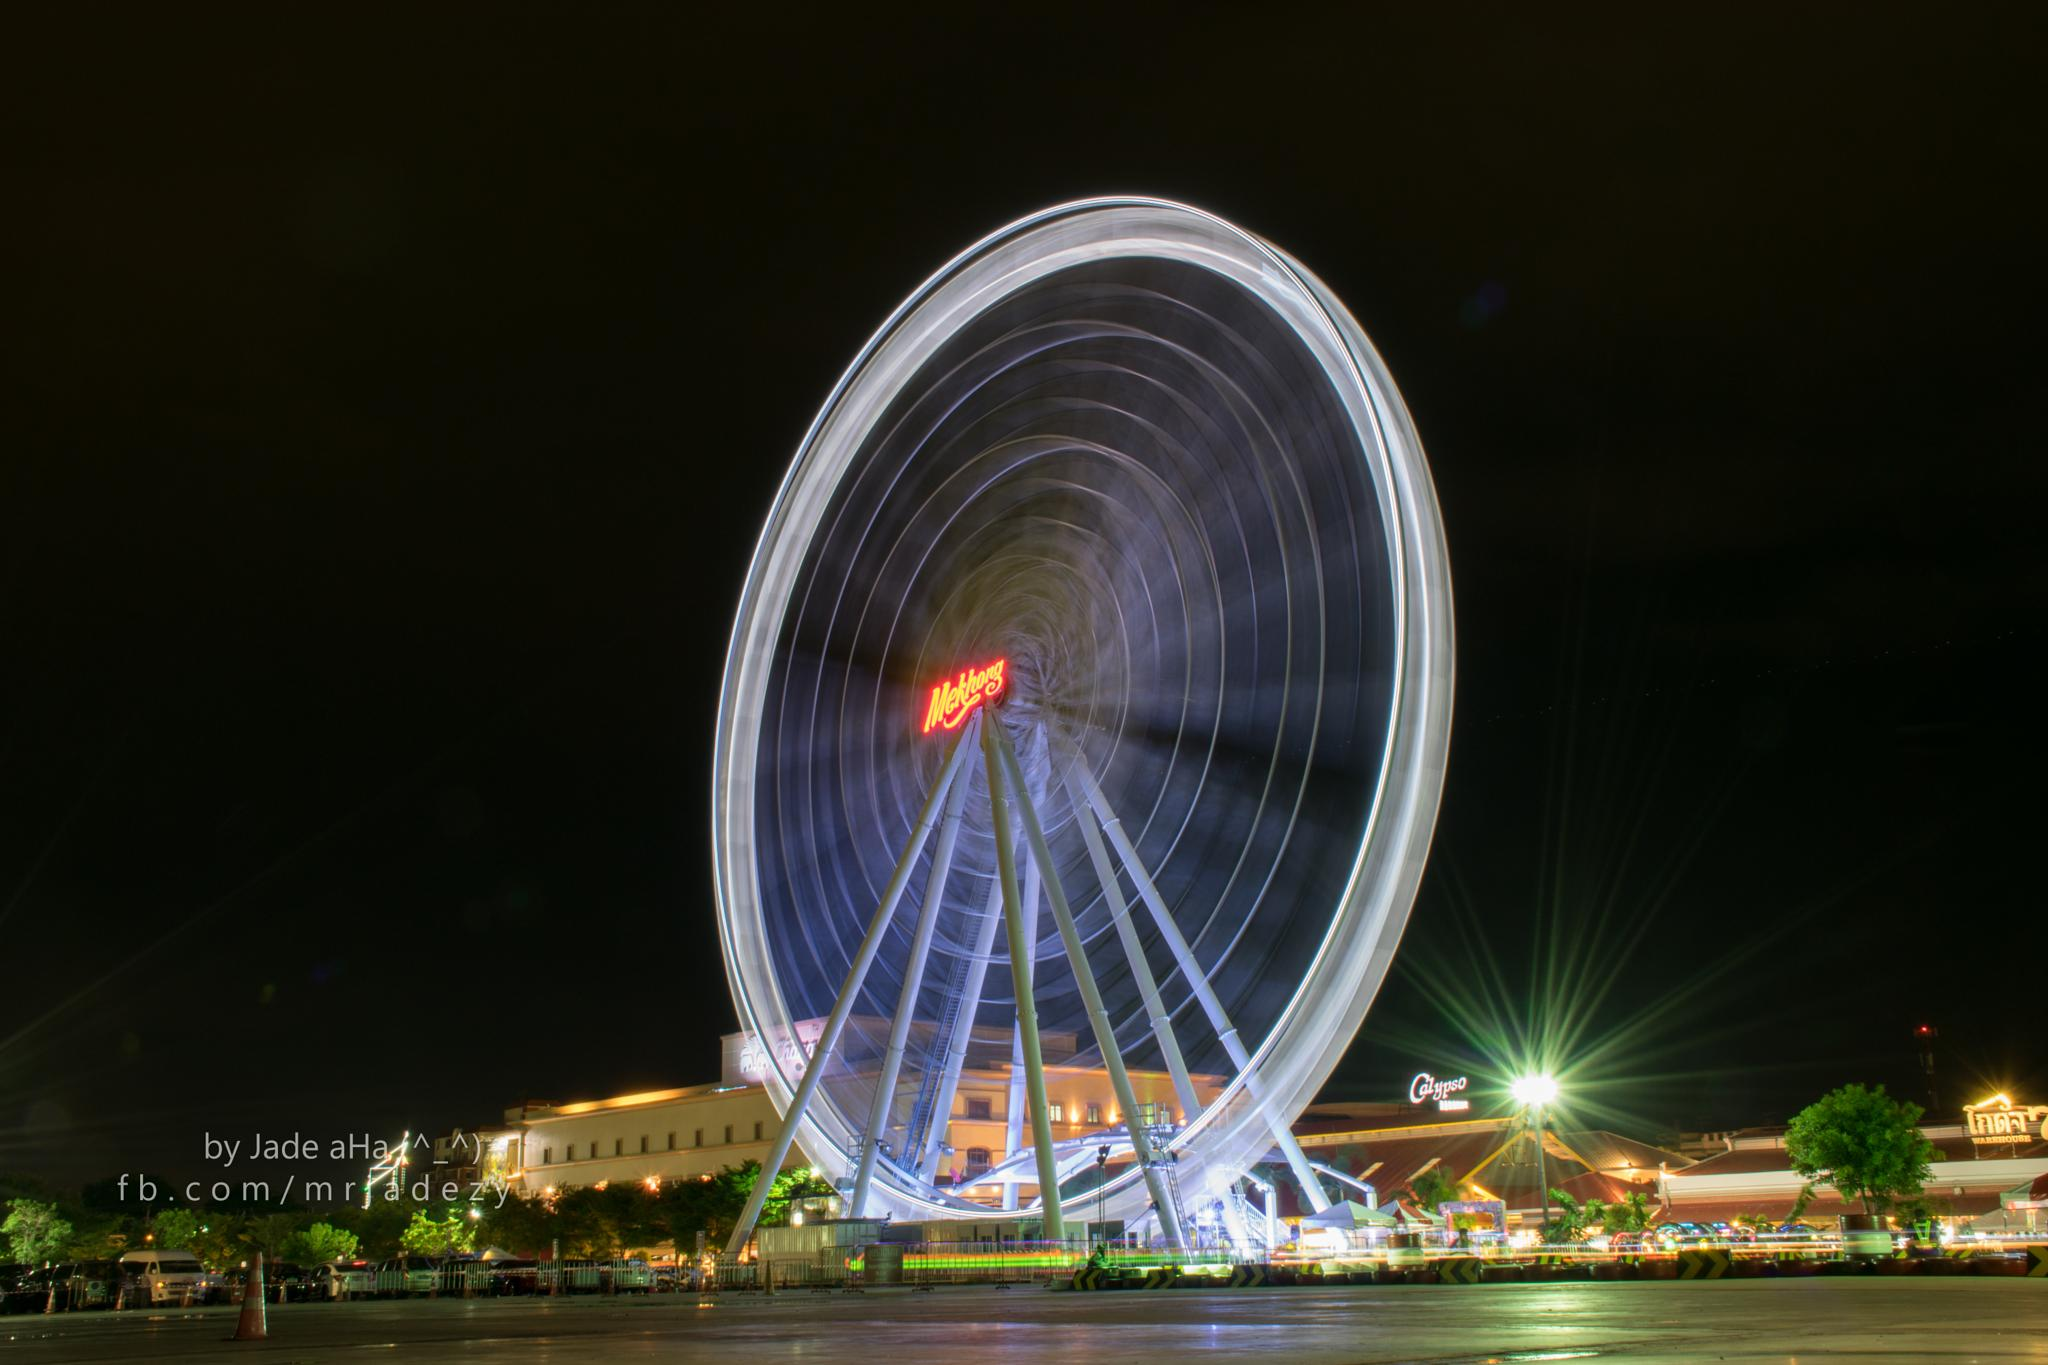 ASIATIQUE Bangkok Thailand by Jade aHa